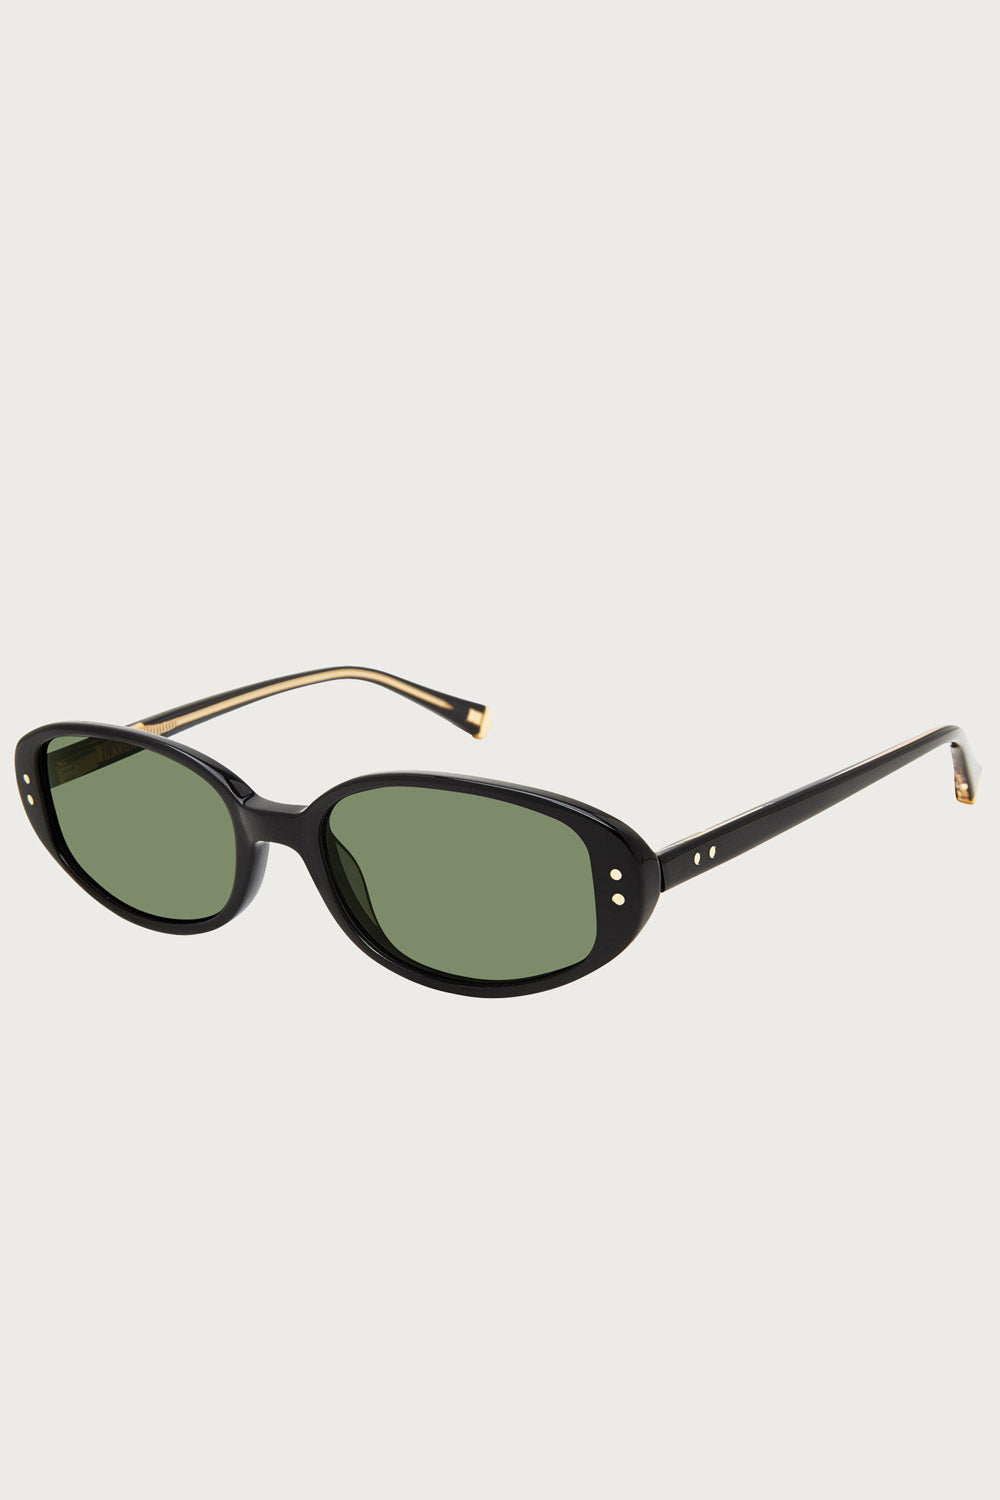 Ivy Sunglasses in Black